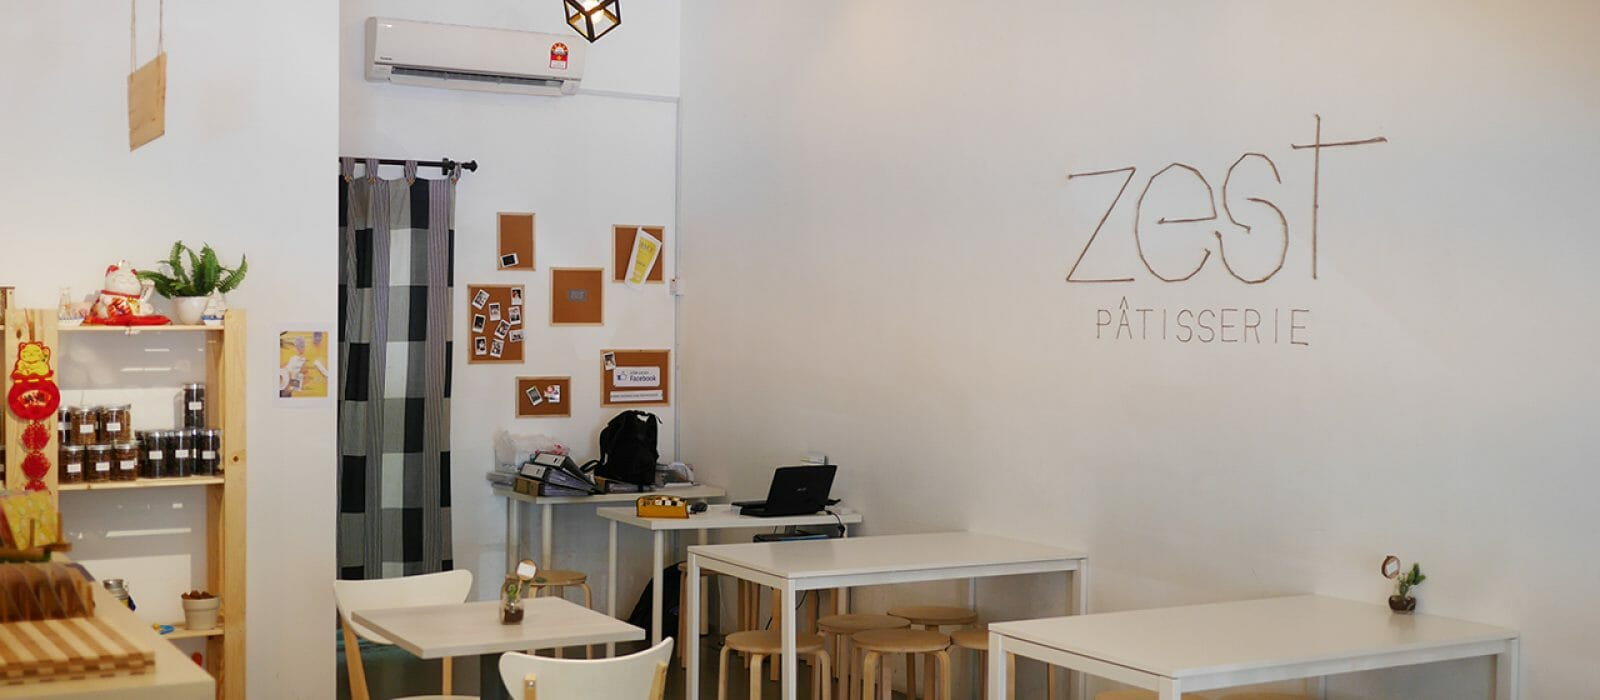 Zest Patisserie, Connaught Avenue, Cheras